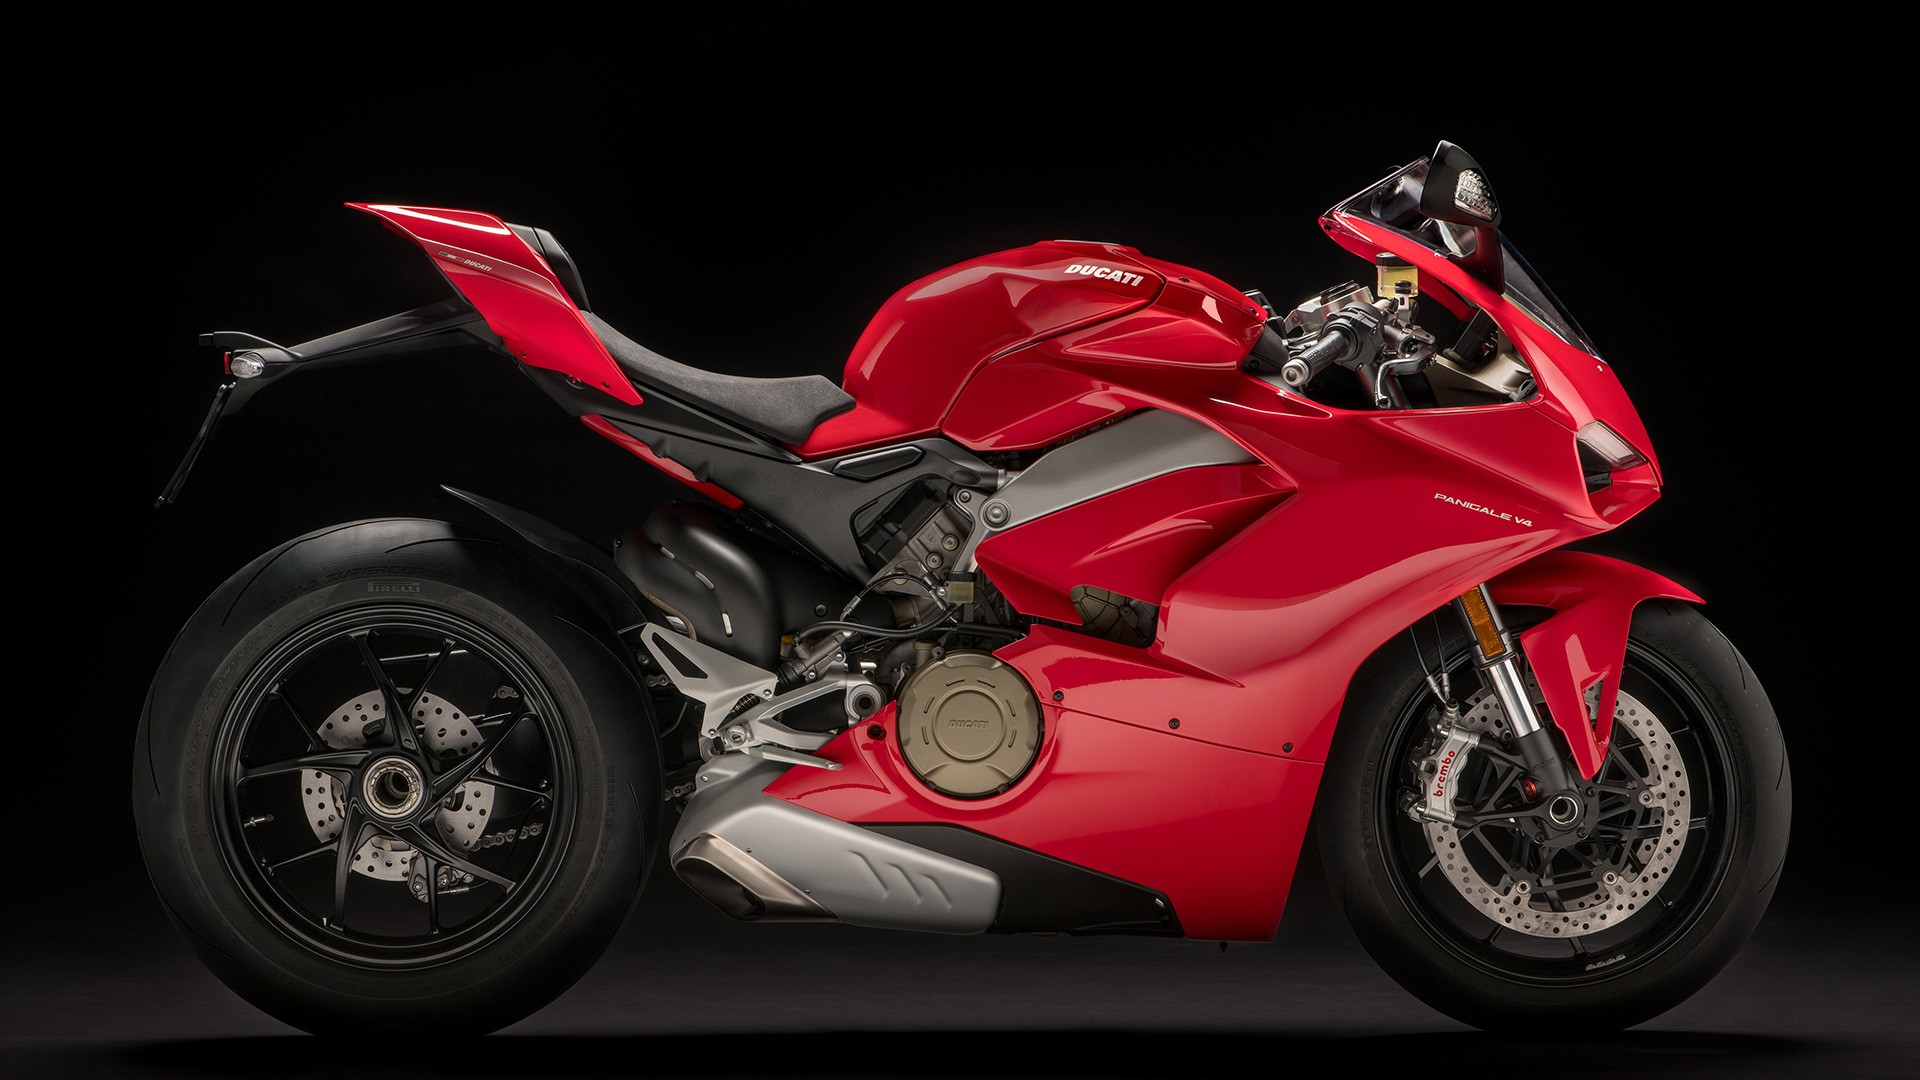 2018 Ducati Panigale V4 Breaks Cover at EICMA And Is Amazing - autoevolution